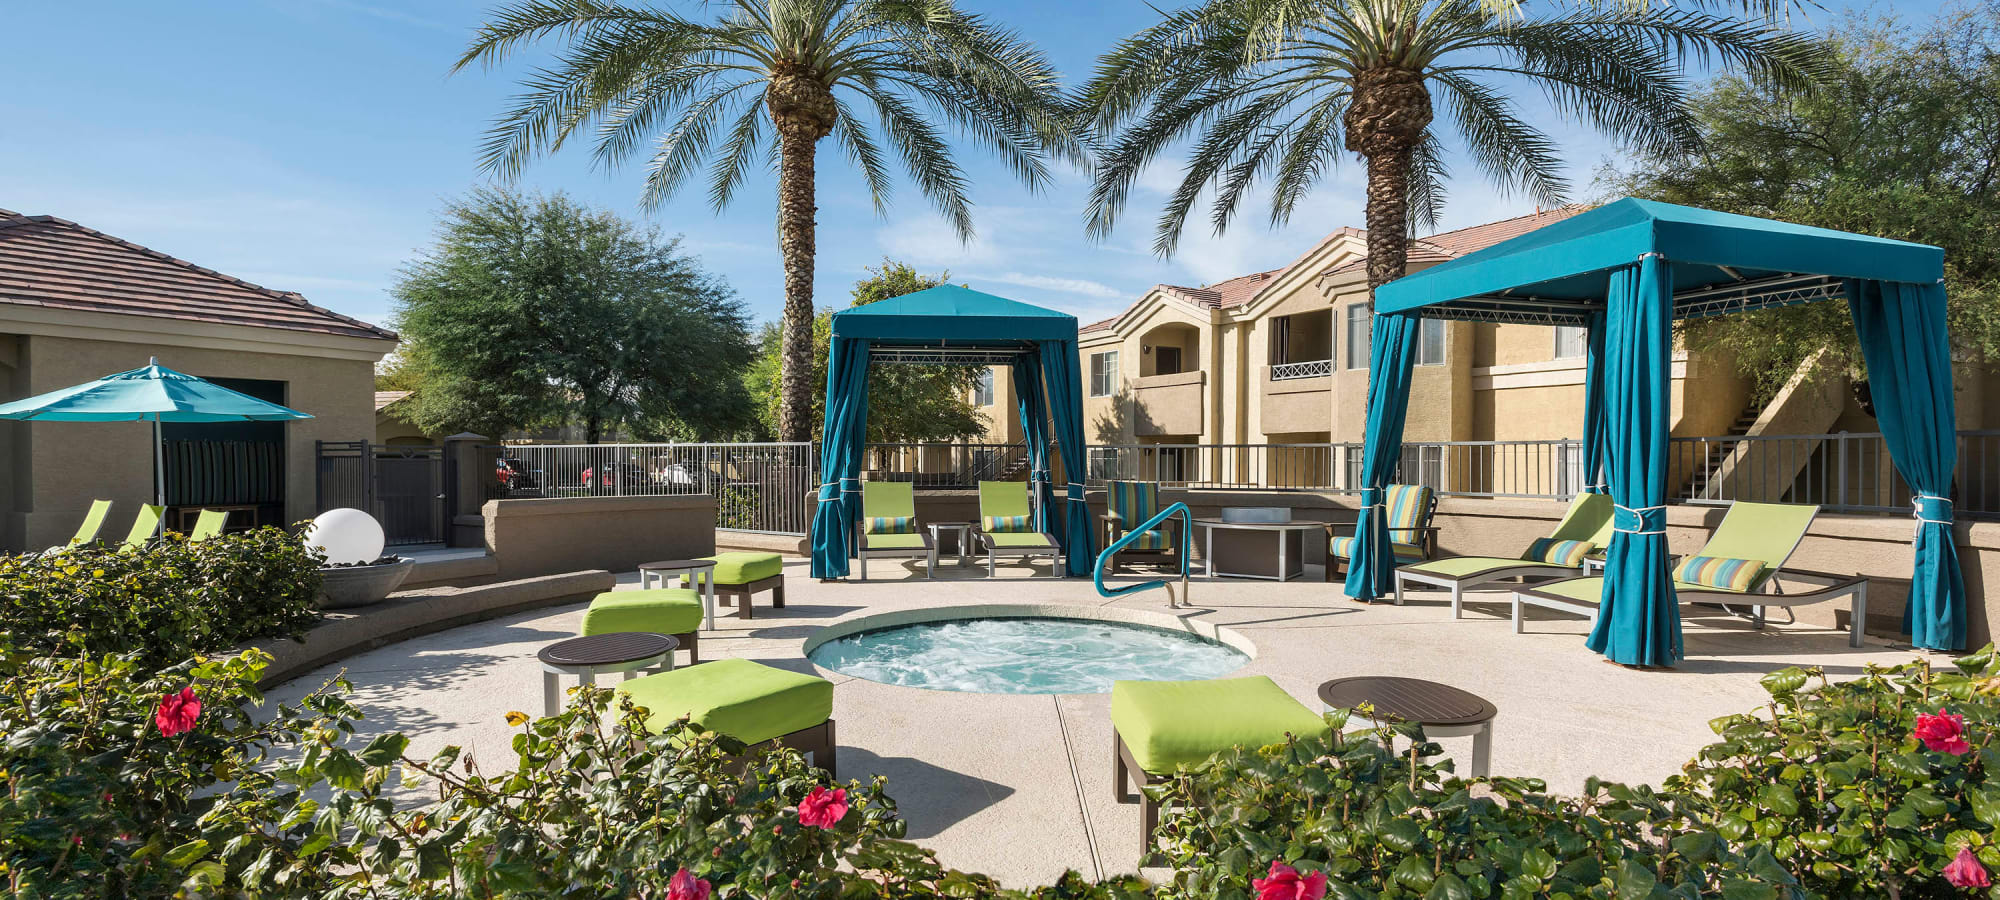 Spa with nearby shaded cabanas on a sunny day at Mira Santi in Chandler, Arizona